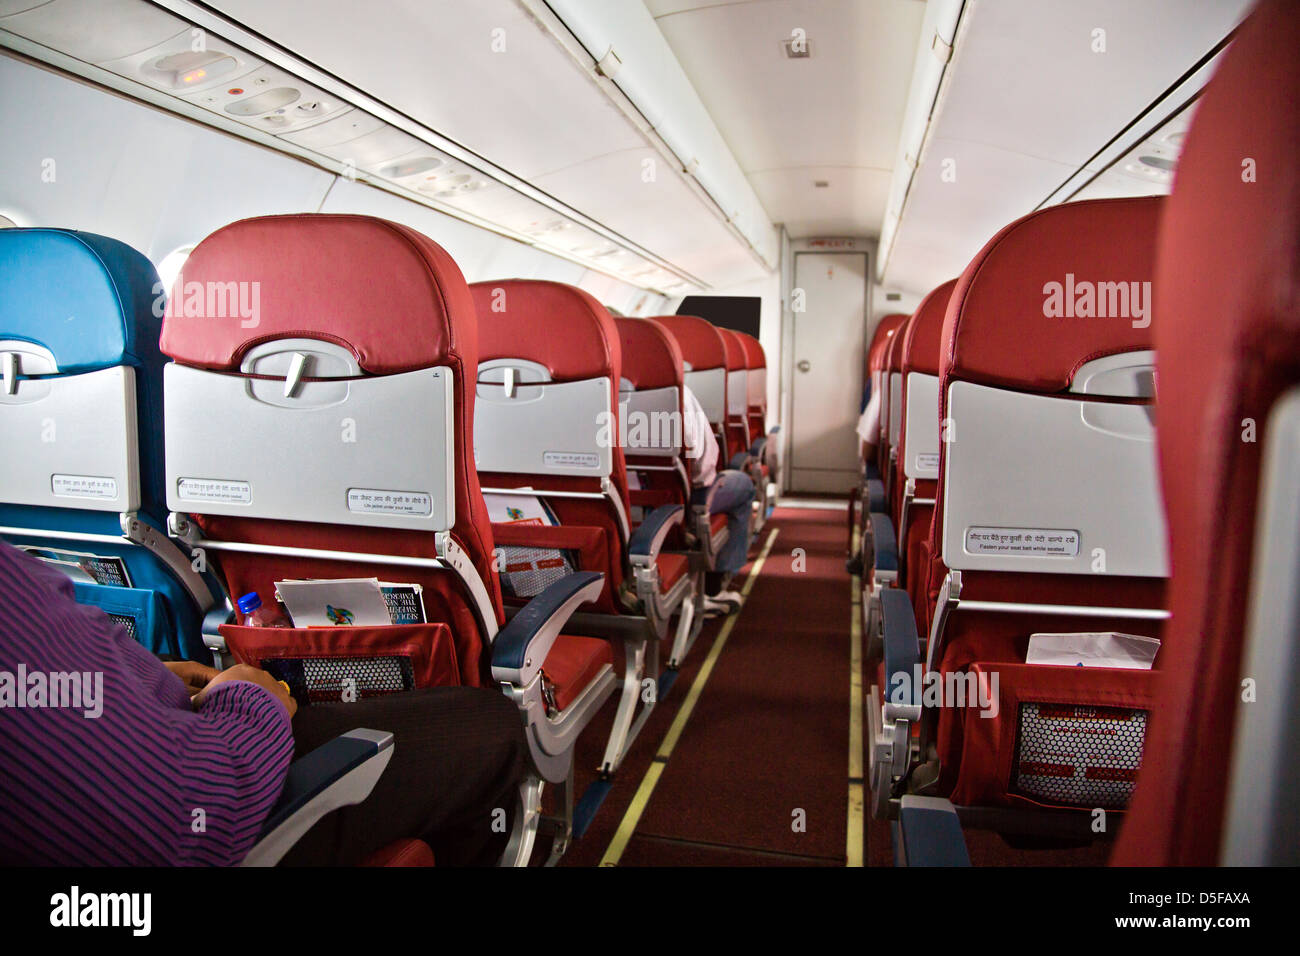 Interiors of an airplane, Shimla Airport, Shimla, Himachal Pradesh, India - Stock Image